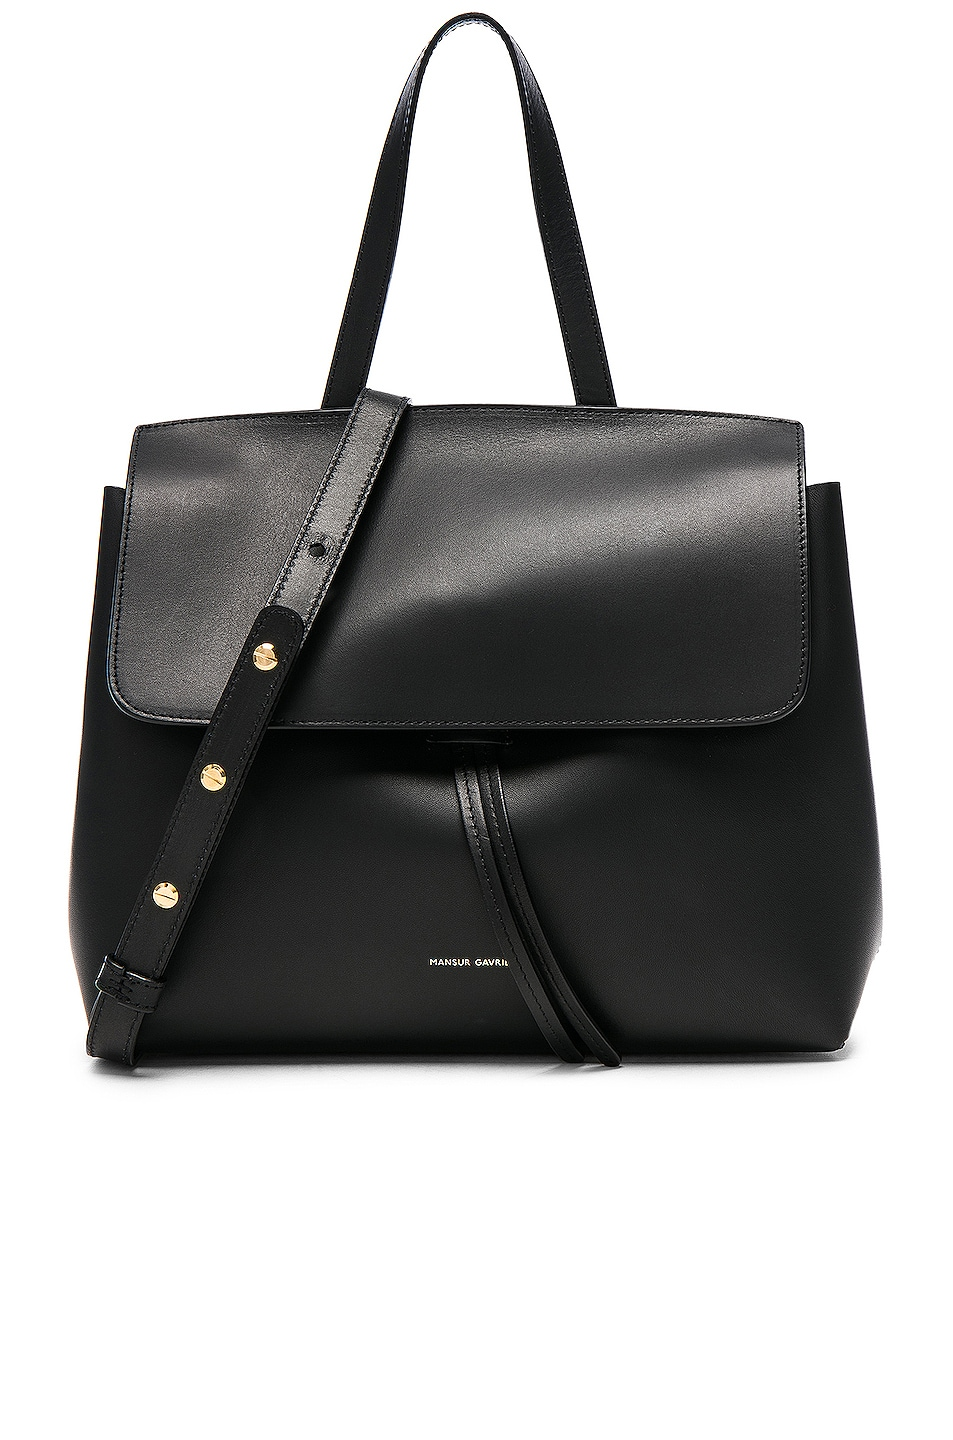 Image 1 of Mansur Gavriel Mini Lady Bag in Black & Blu Vegetable Tanned